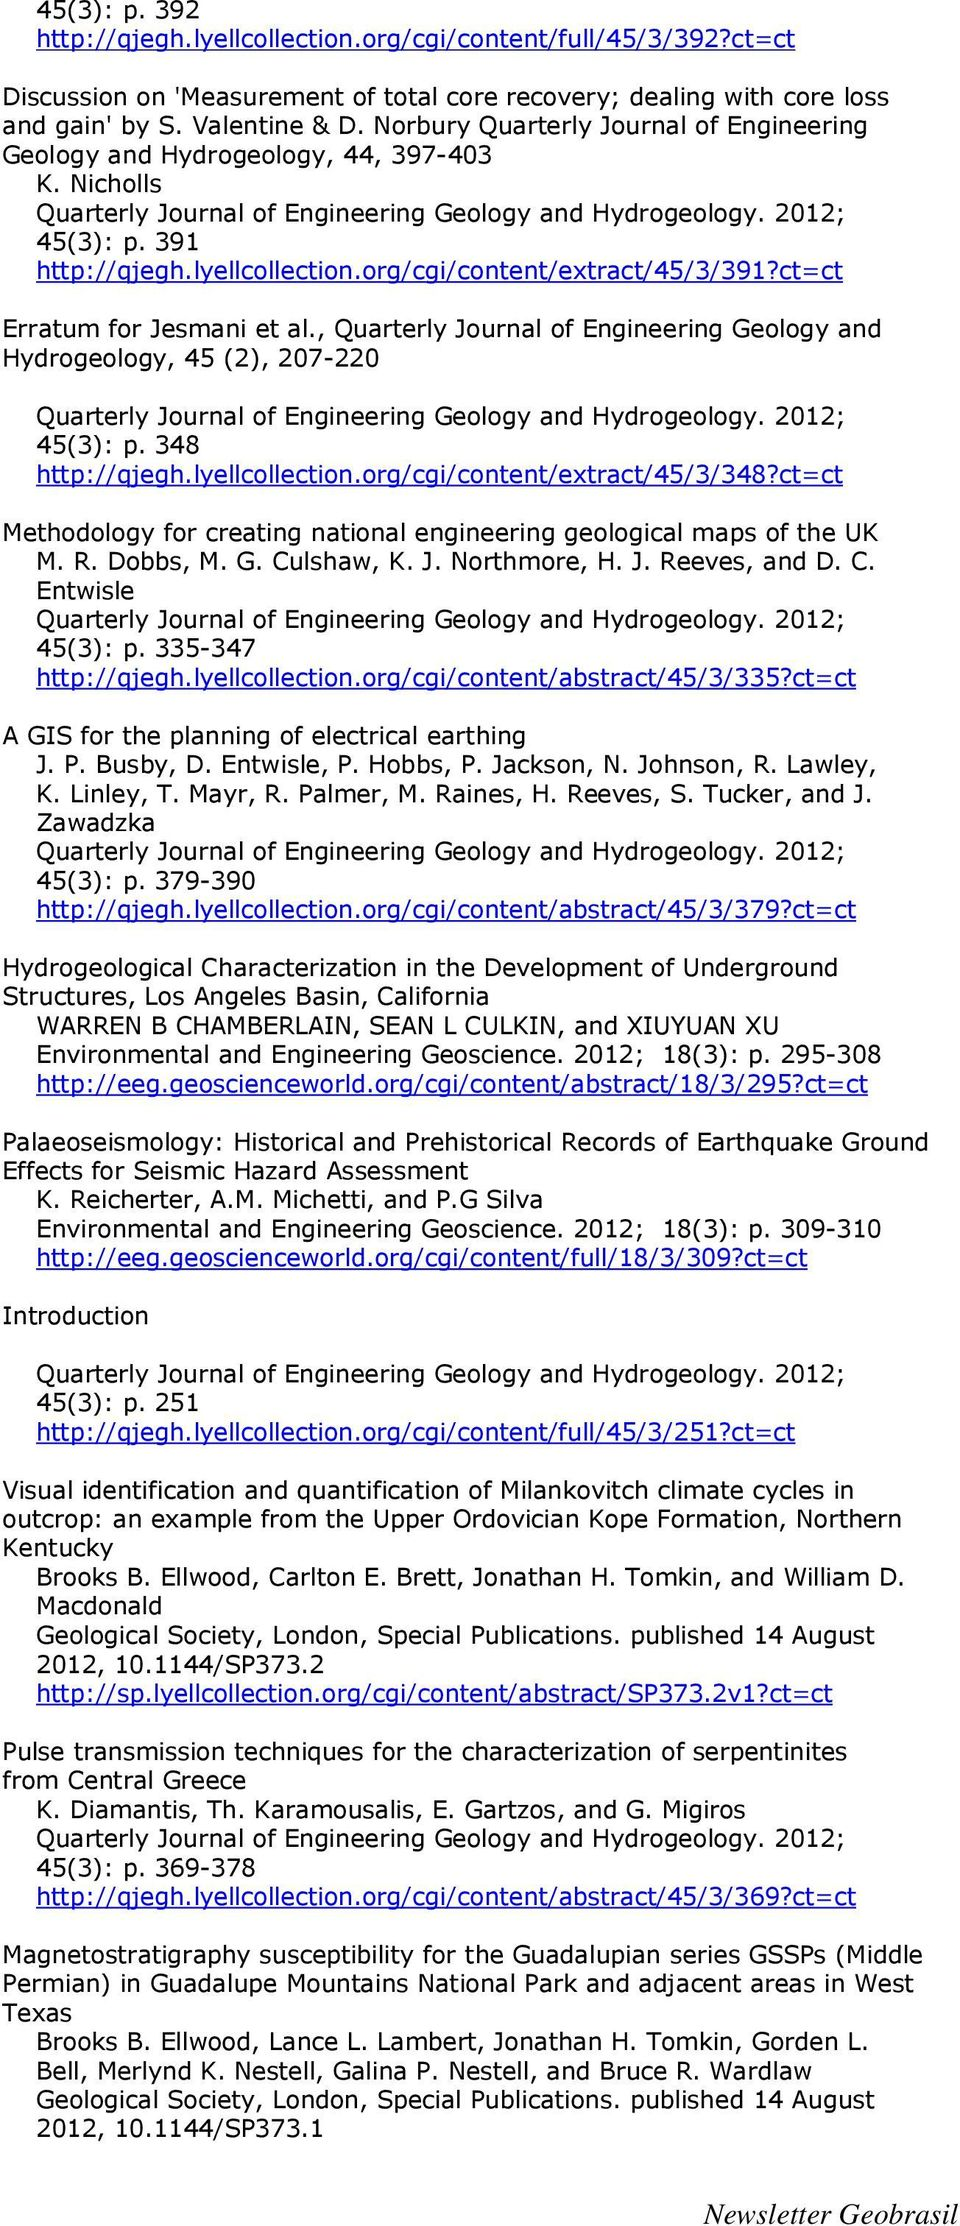 , Quarterly Journal of Engineering Geology and Hydrogeology, 45 (2), 207-220 45(3): p. 348 http://qjegh.lyellcollection.org/cgi/content/extract/45/3/348?